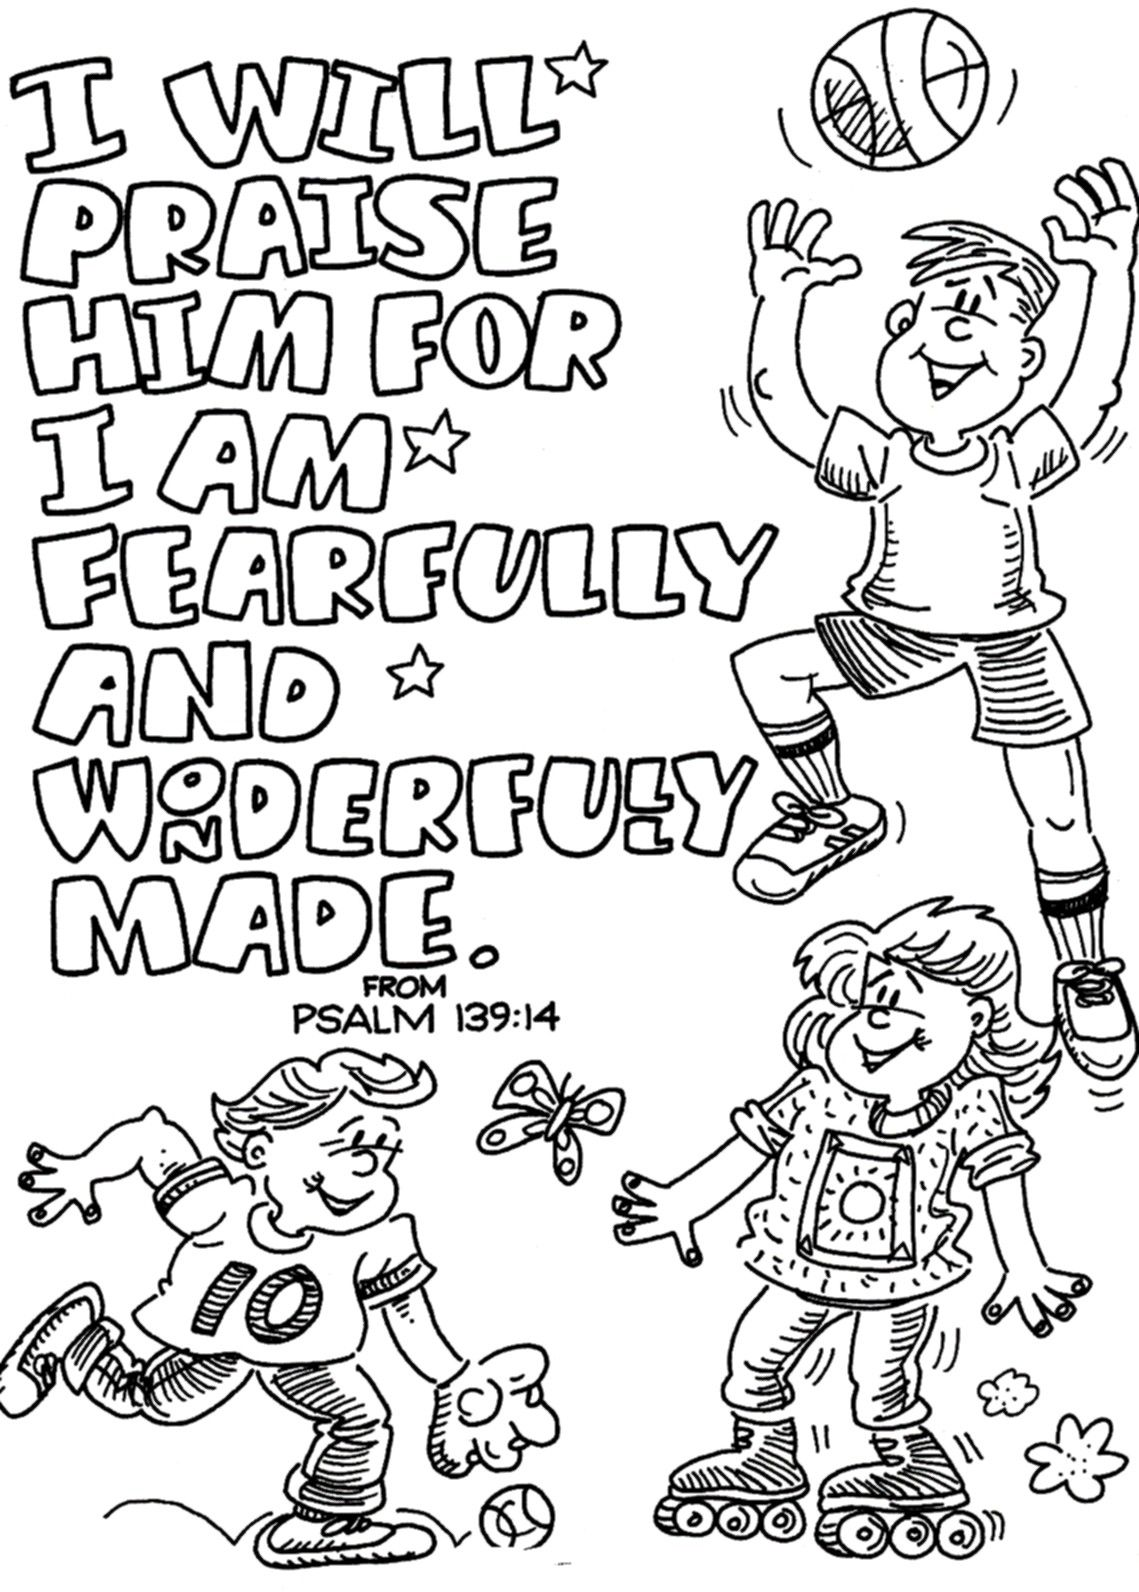 faith coloring page to print I will Praise Him